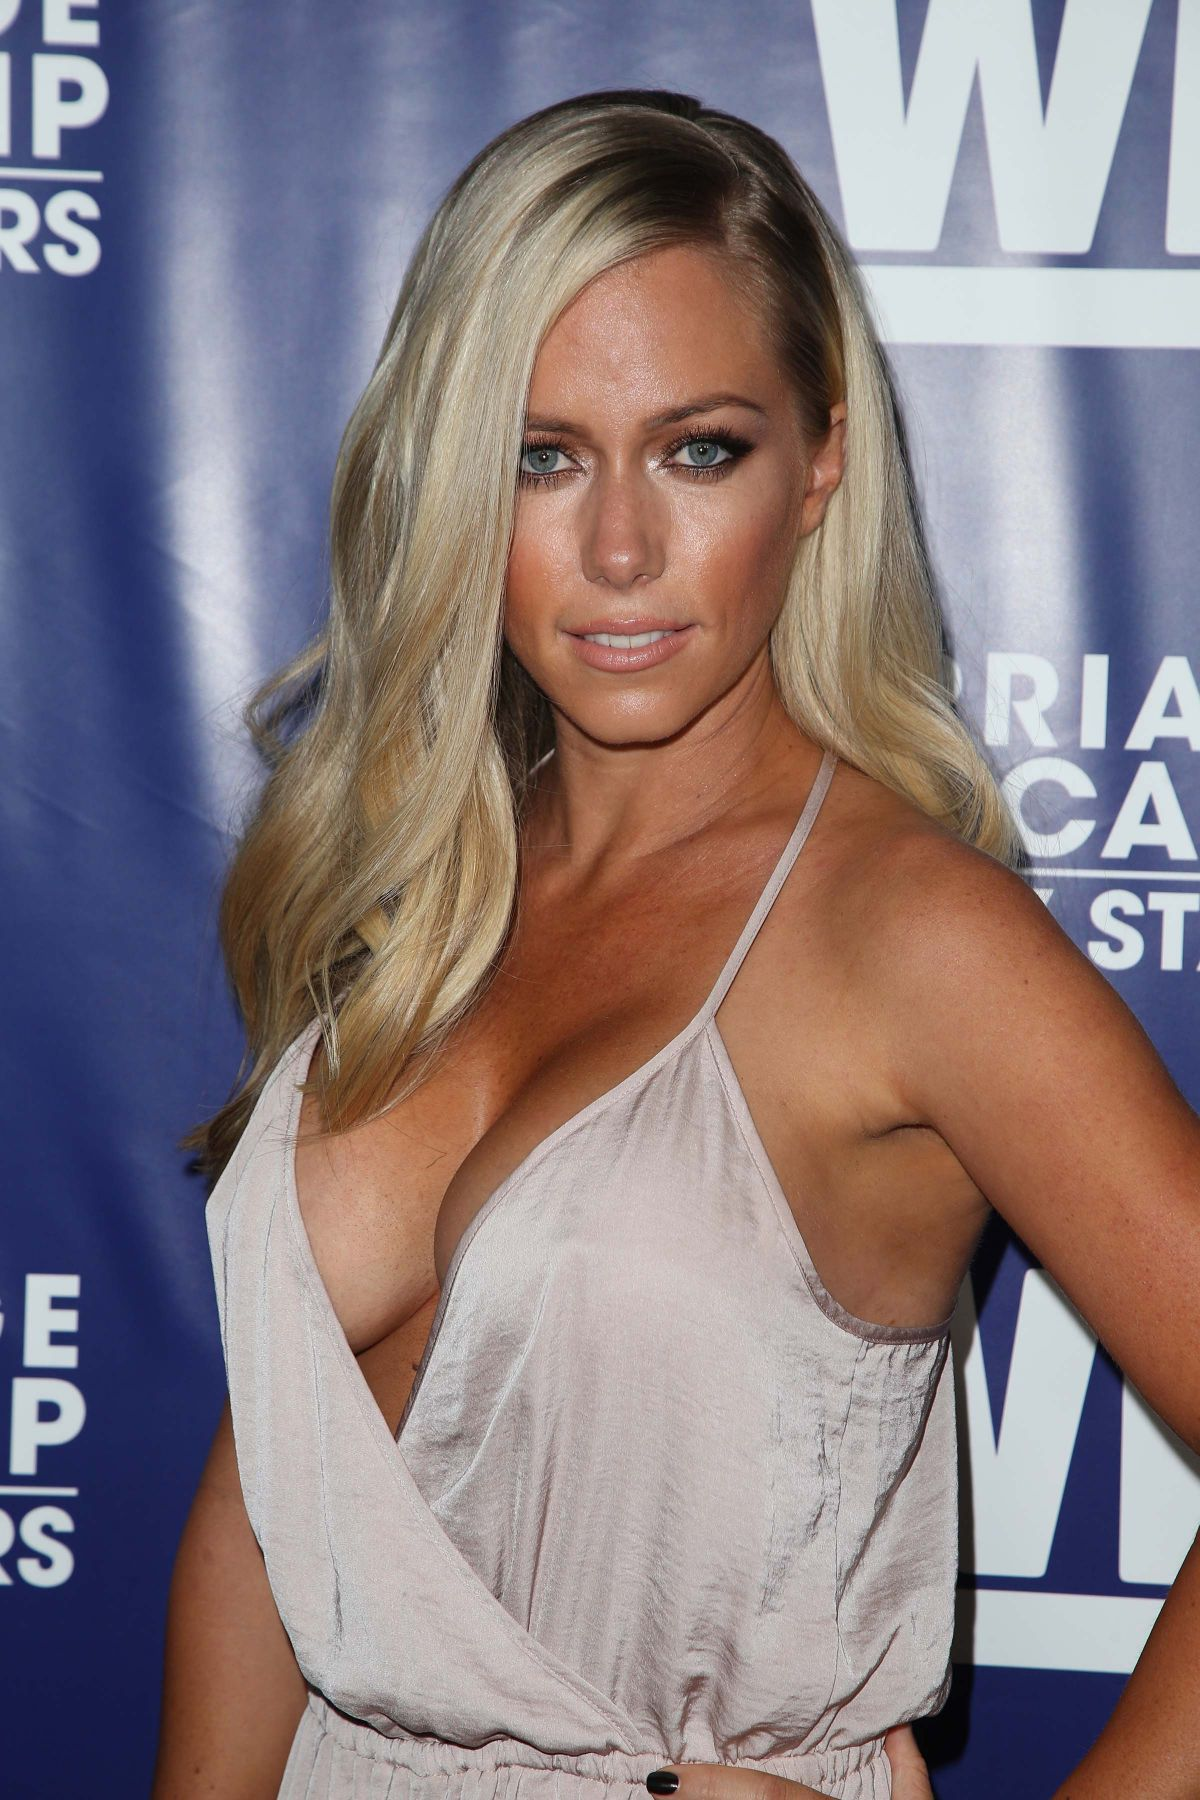 Photos Kendra Wilkinson nudes (45 foto and video), Tits, Fappening, Boobs, braless 2018